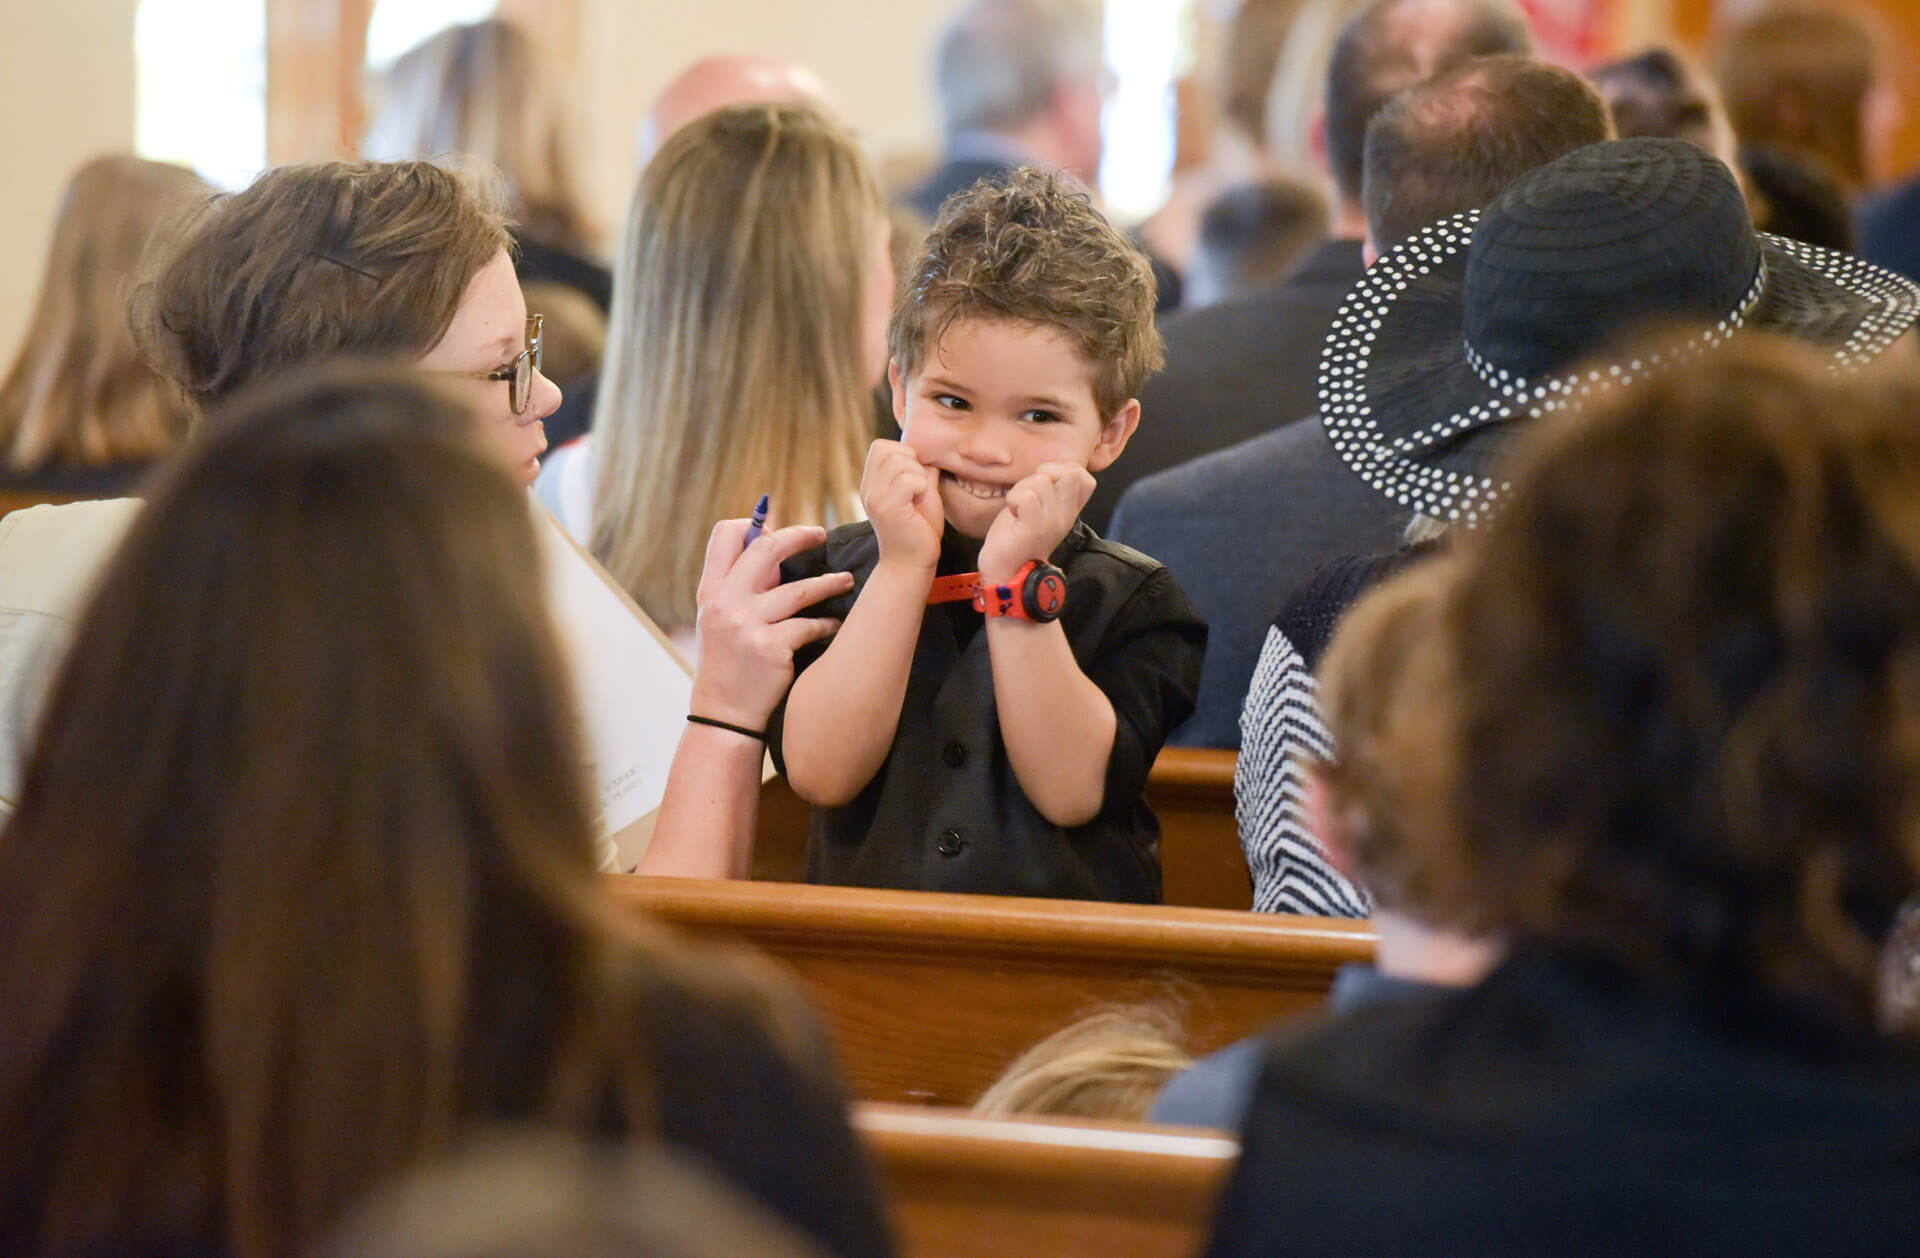 A bored young wedding guest entertains himself by making faces during a Catholic wedding service in Troy, Michigan.